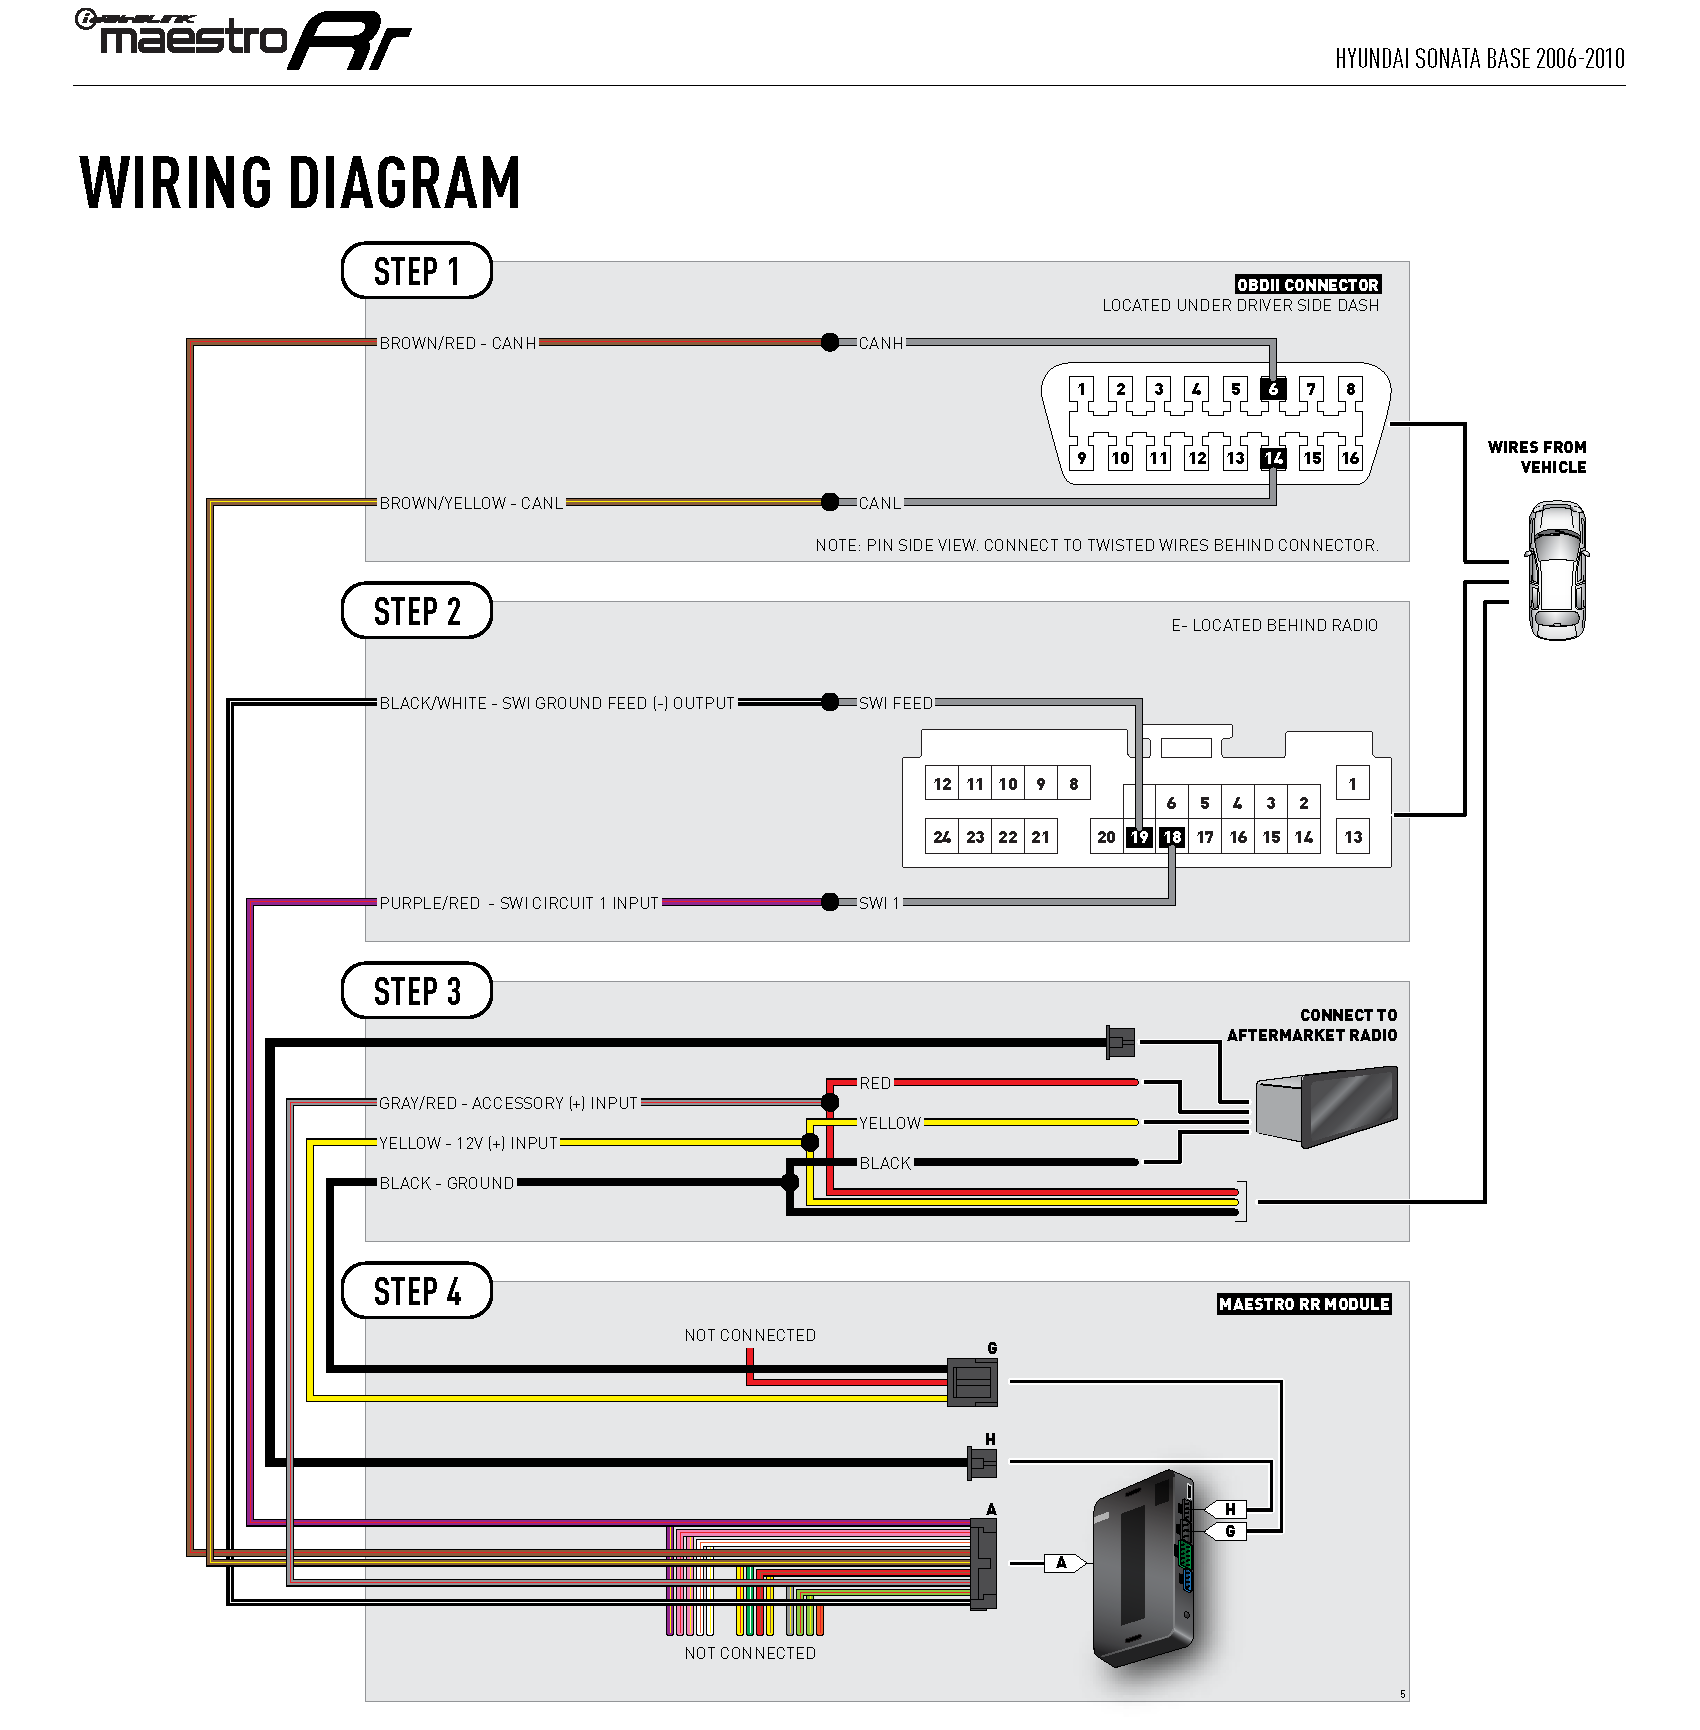 [ANLQ_8698]  DIAGRAM] Jackson Rr Wiring Diagram FULL Version HD Quality Wiring Diagram -  MFJ4035MVSCHEMATIC3570.CONTRABBASSIVERDIANI.IT | Idatalink Wiring Diagram |  | Contrabbassi di Simone e Damiano Verdiani